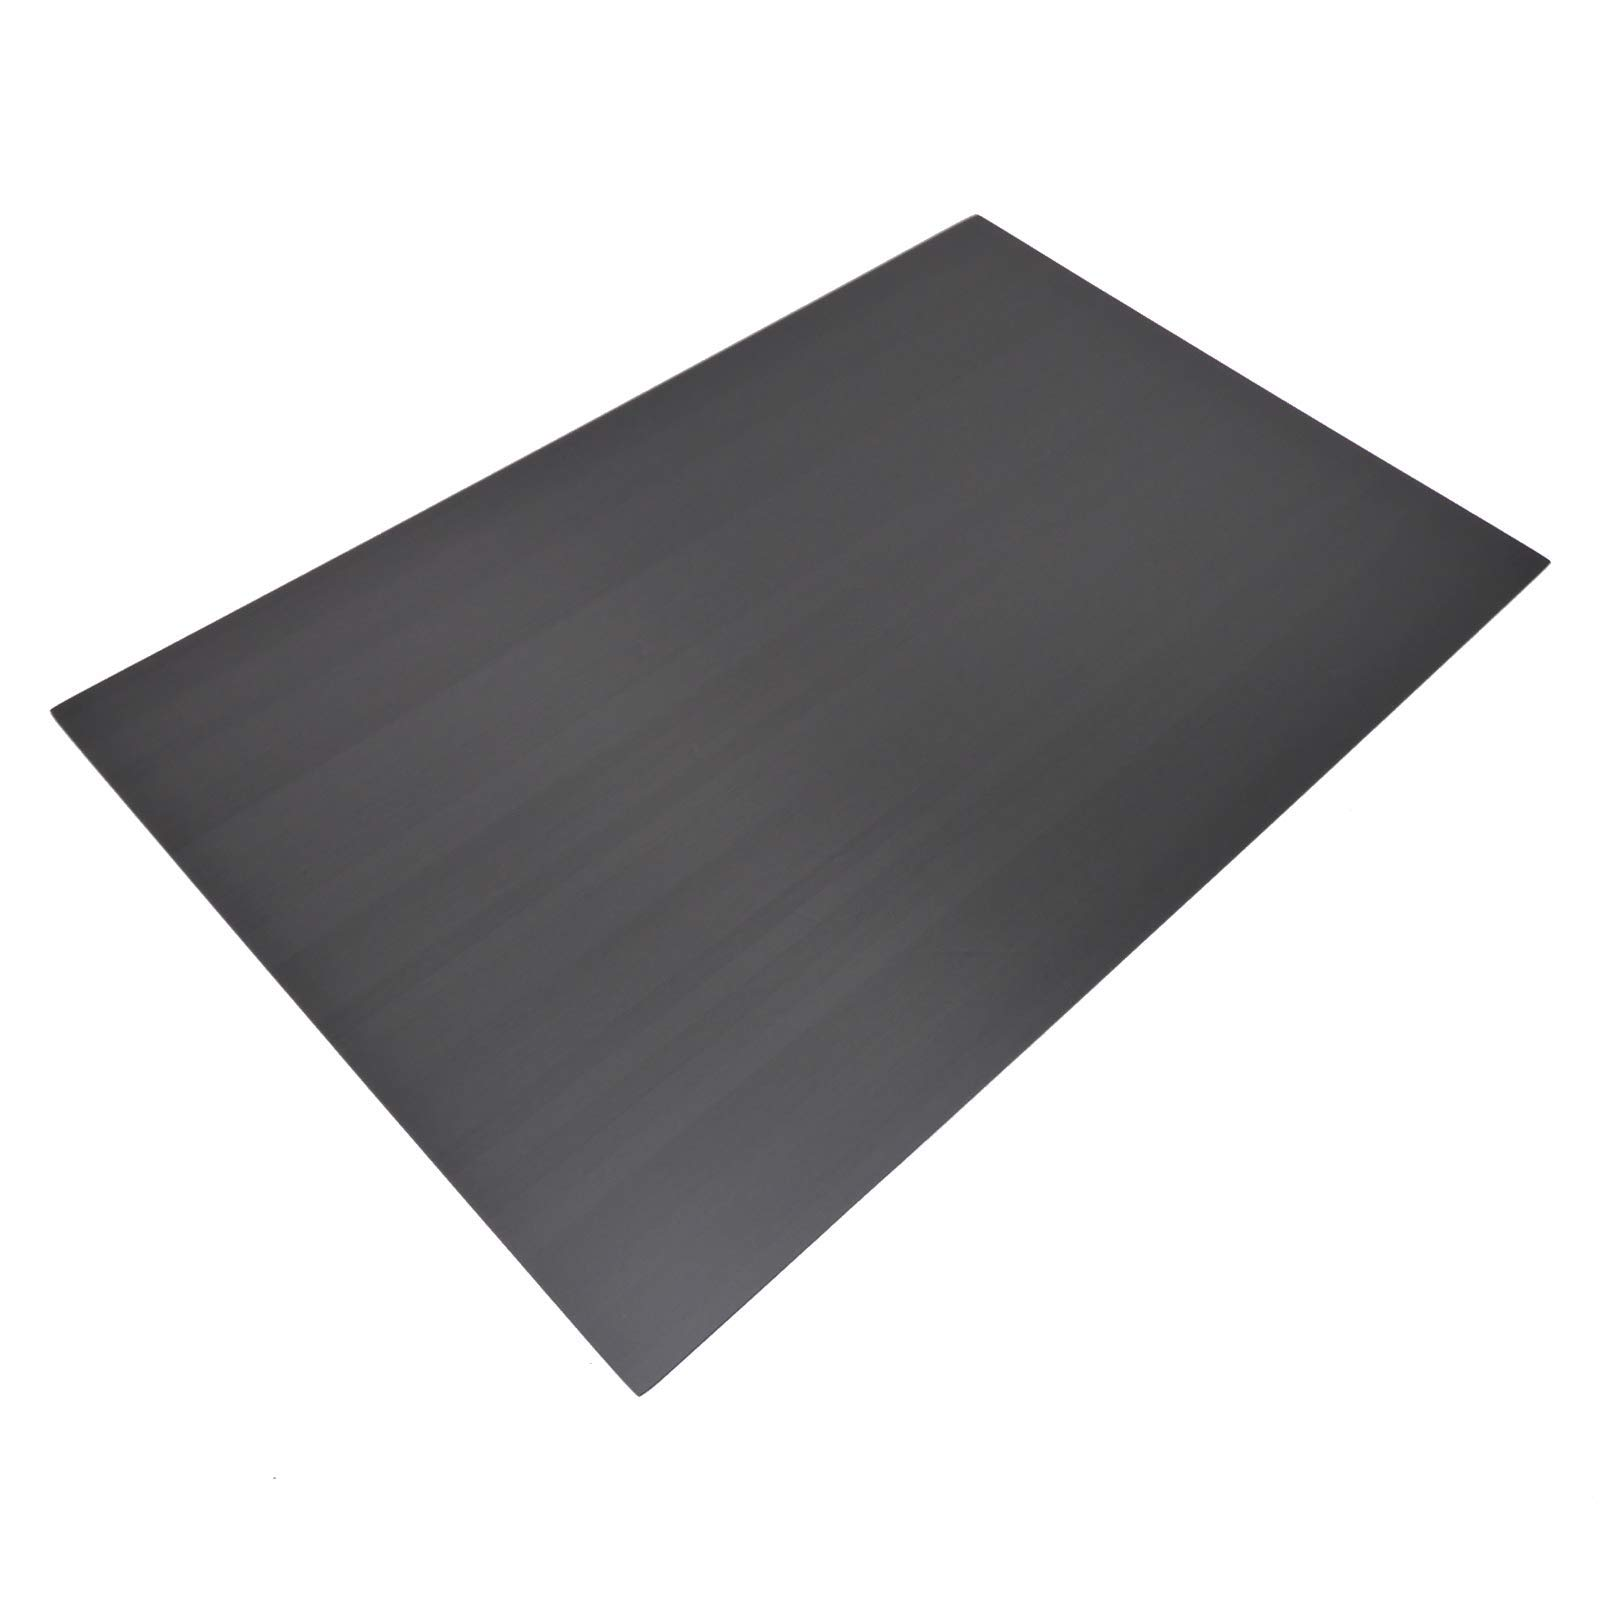 300x200x3MM Unidirectional Carbon Fiber Composite Sheet Panel Gloss Finish by USAQ